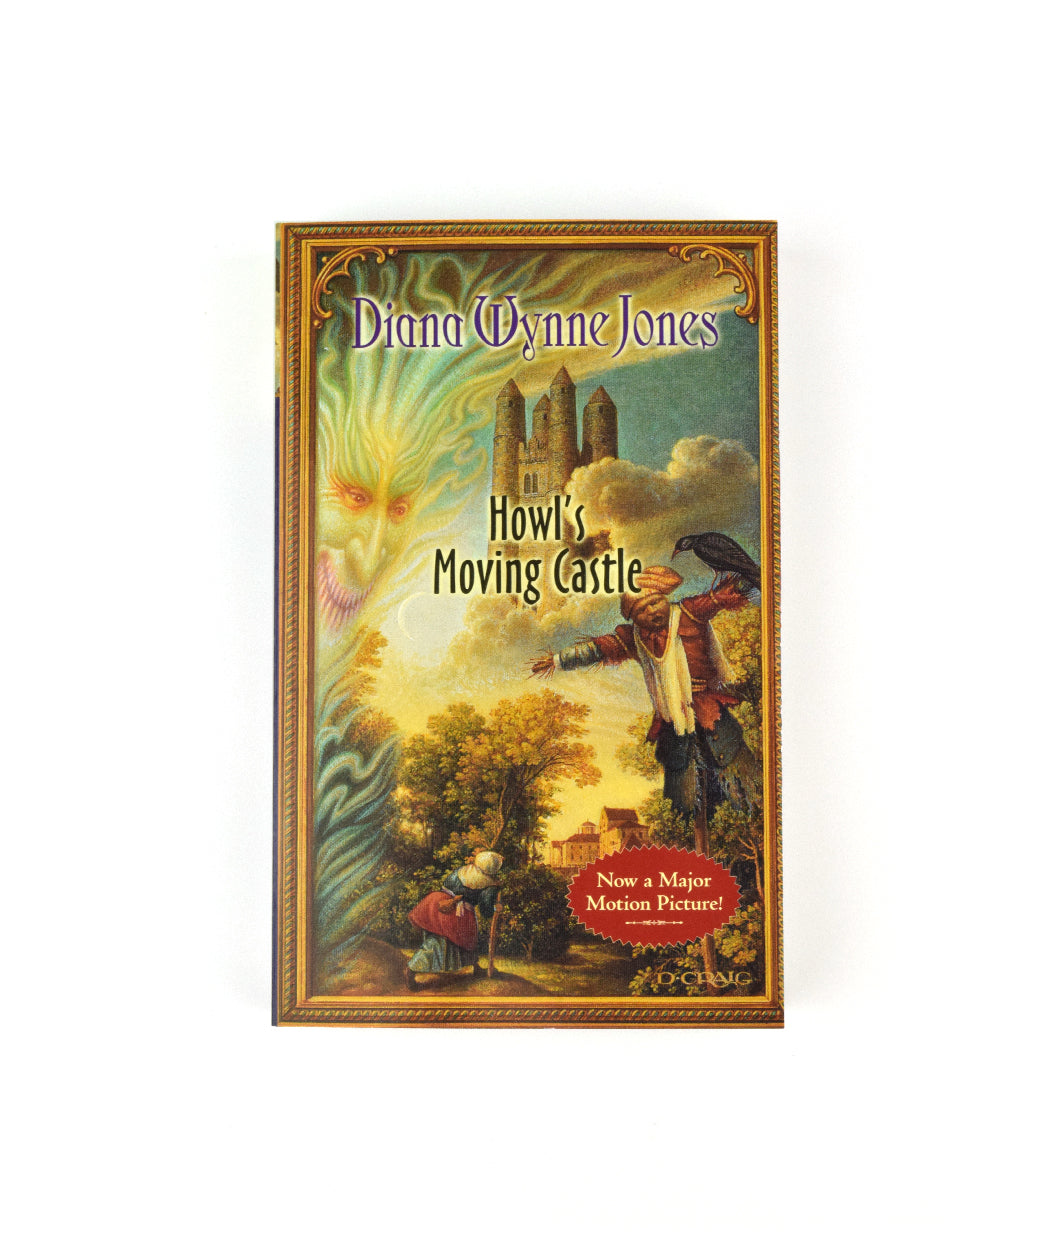 Howl's Moving Castle Book By Diana Wynne Jones